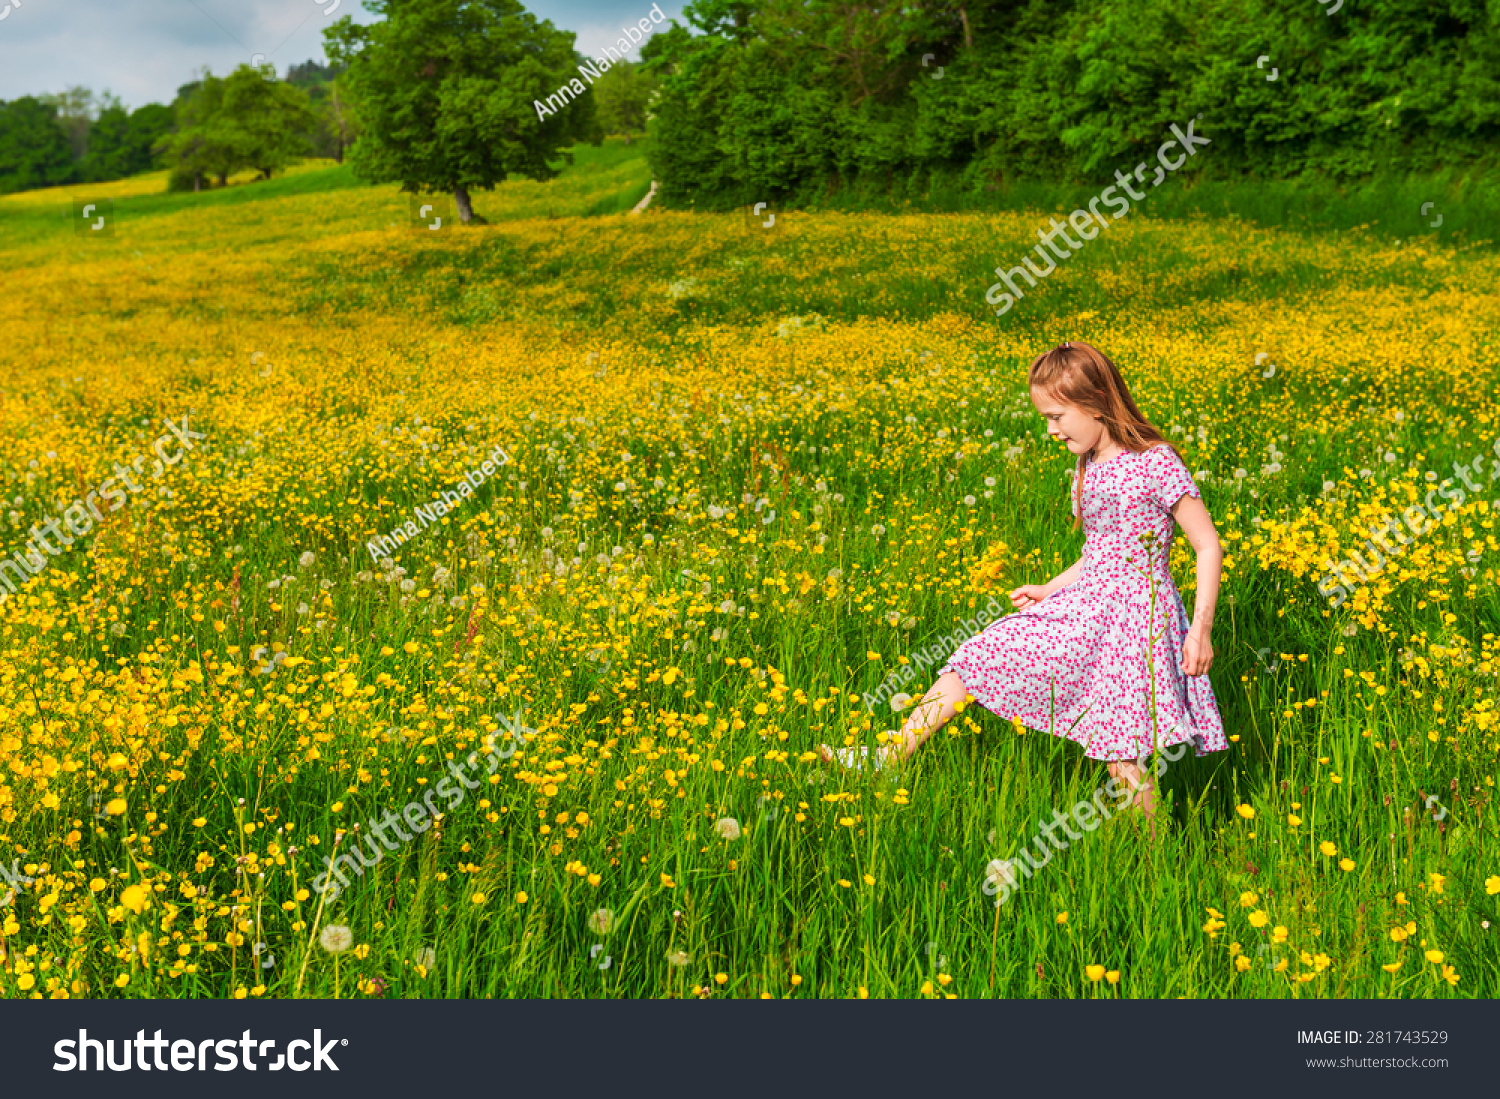 Adorable little girl of 7 years old playing in field full of yellow buttercups wearing summer dress